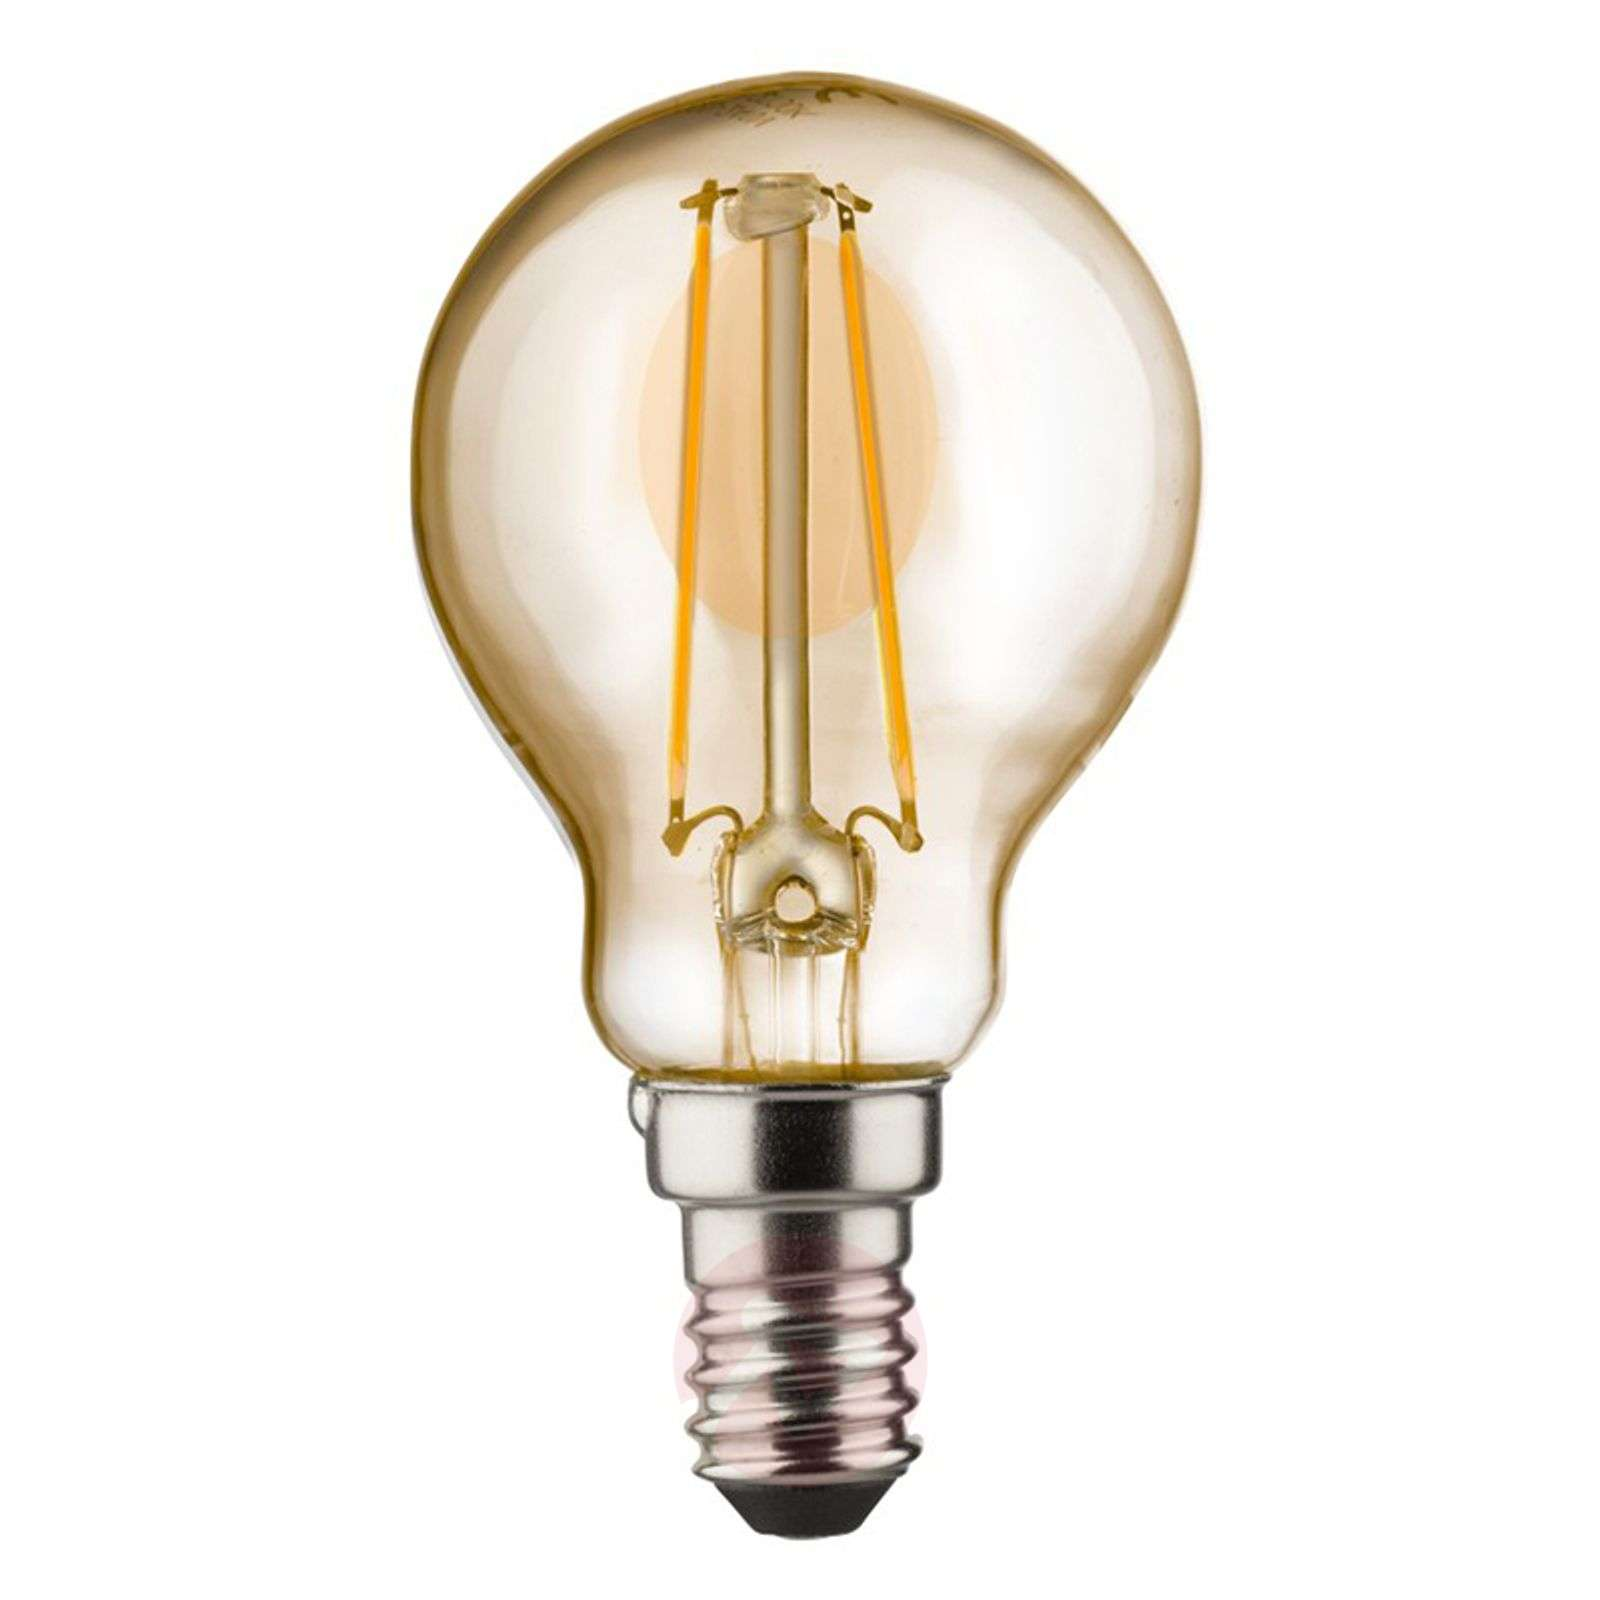 E14 2 W 820 LED golf ball bulb, gold-6520237-01